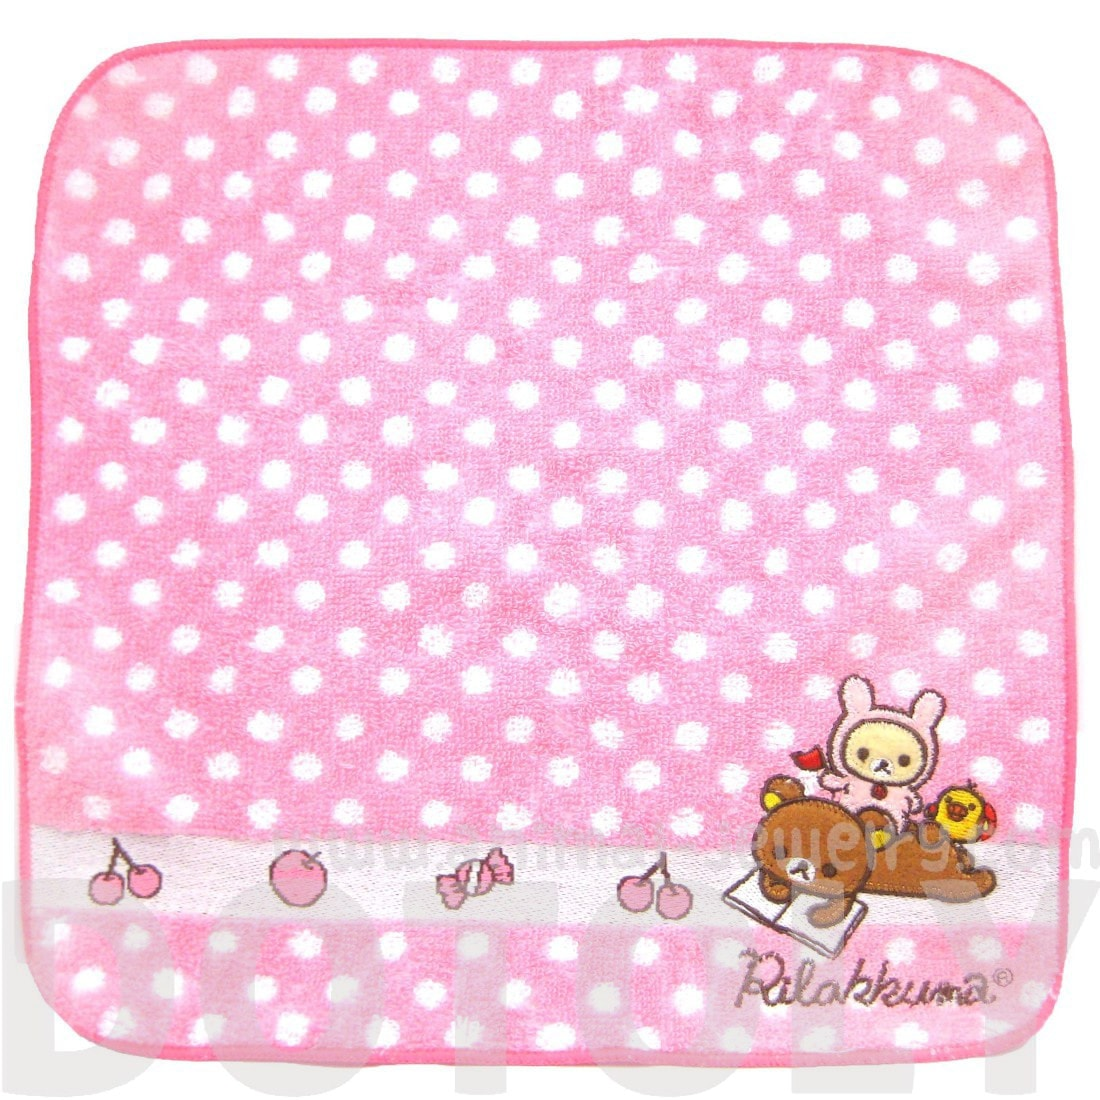 Pink Polka Dotted Embroidered Rilakkuma Bear Handkerchief Face Towel